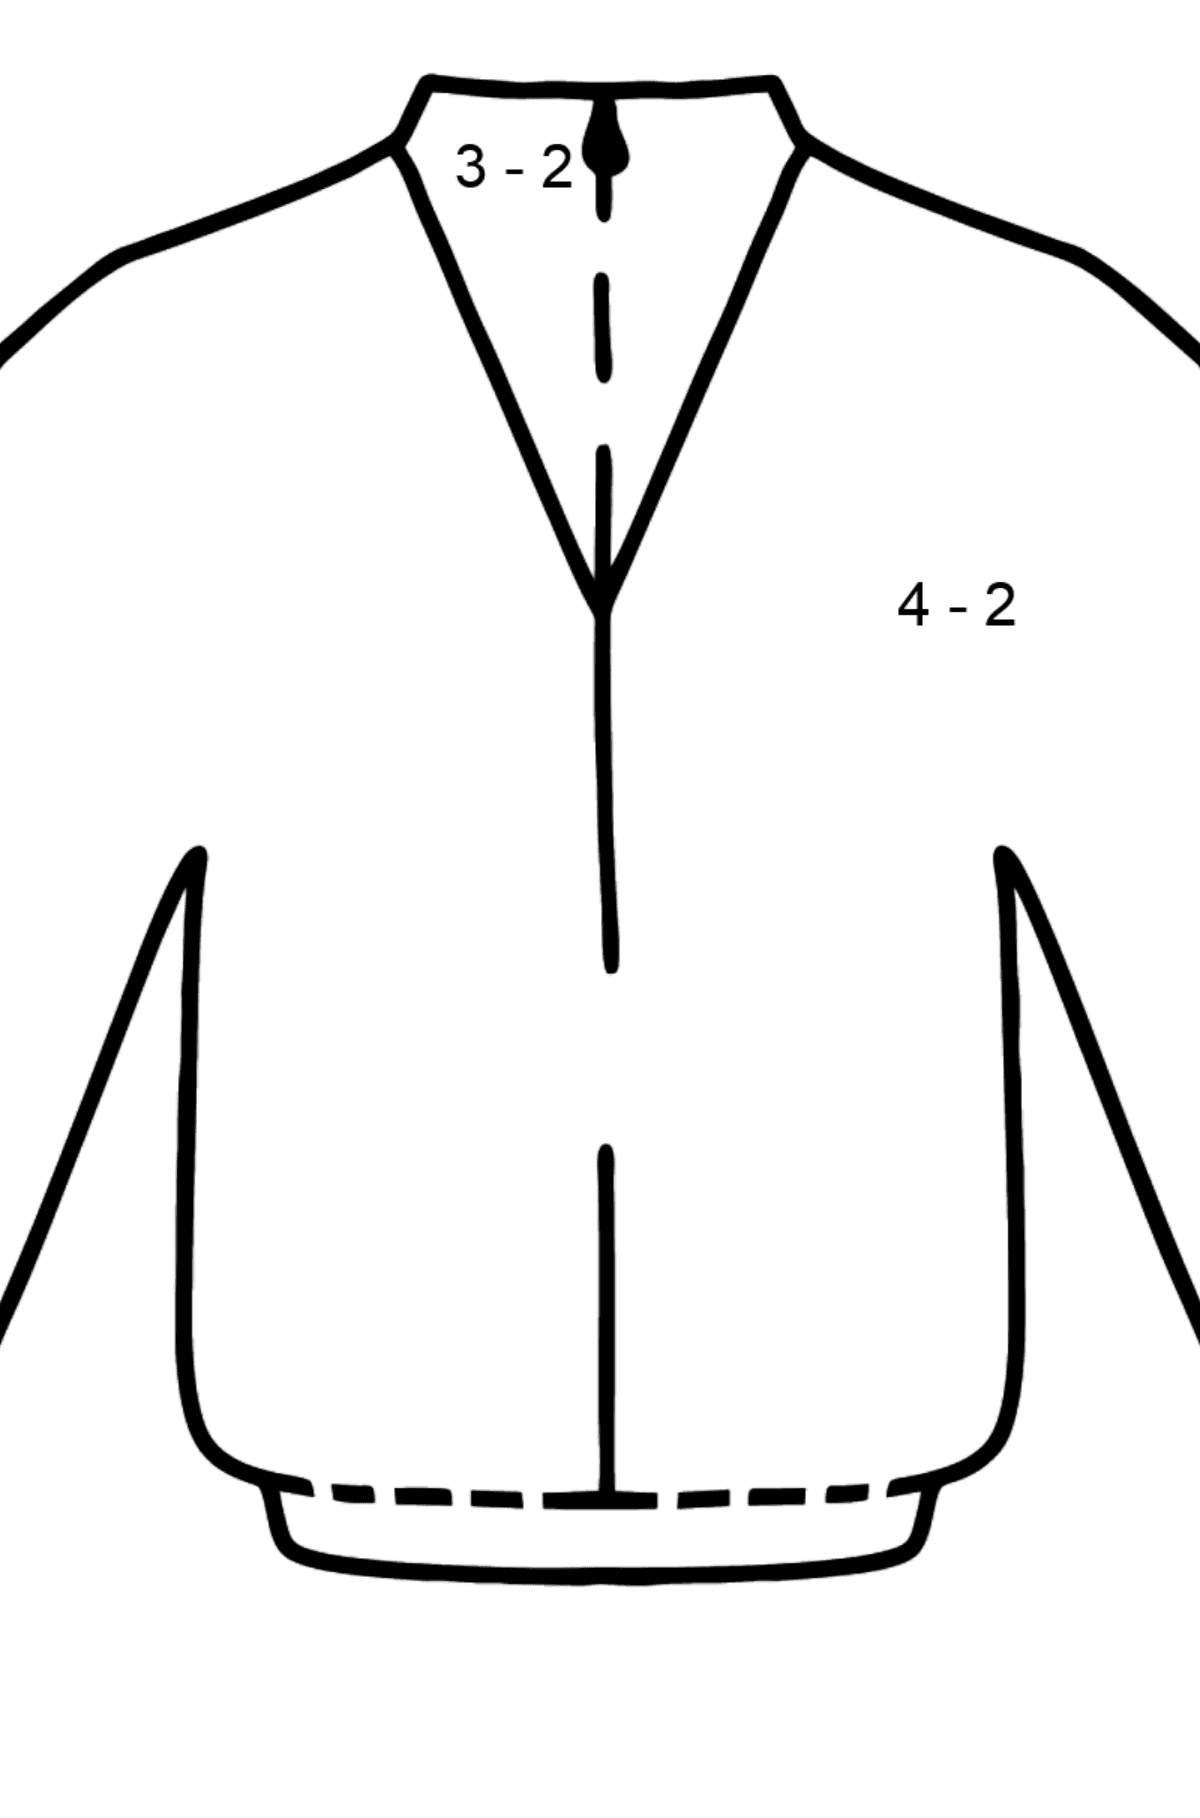 Blue Jacket coloring page - Math Coloring - Subtraction for Kids